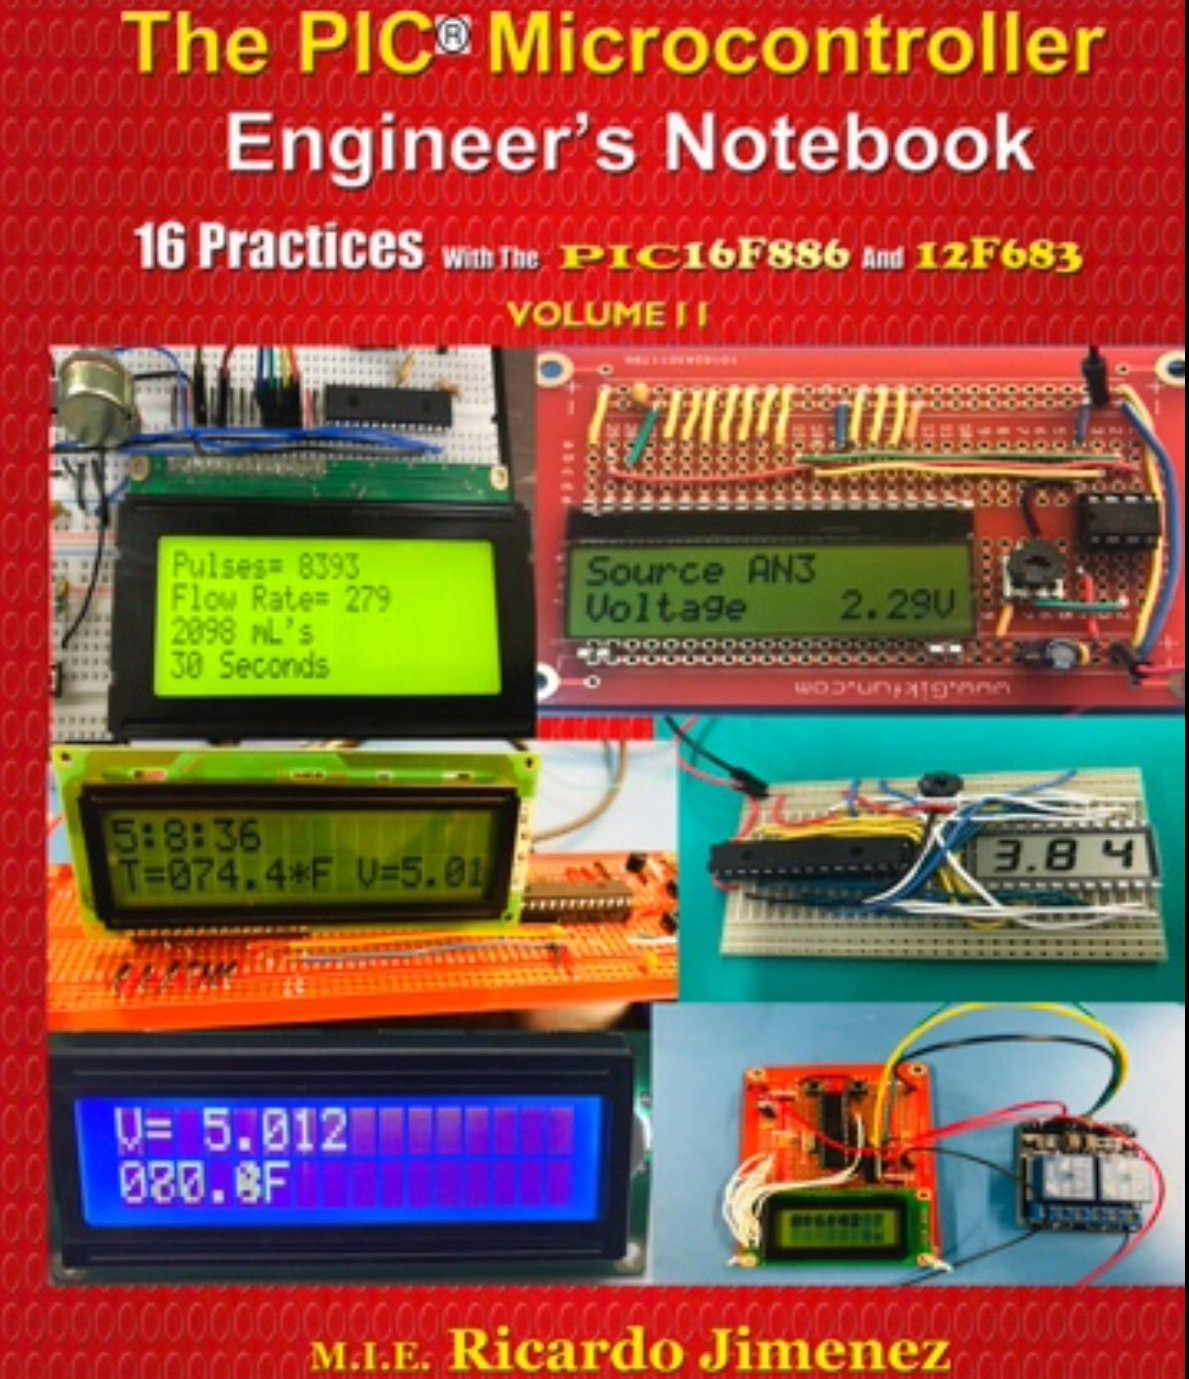 PIC MICROCONTROLLER ENGINEER'S NOTEBOOK 16 PRACTICES PIC16F886 12F683 Volume II Integrated Circuits Programmable Timers Digital Clock Voltage to Pulse Train Converters Single Chip Voltmeter Frequency pdf epub